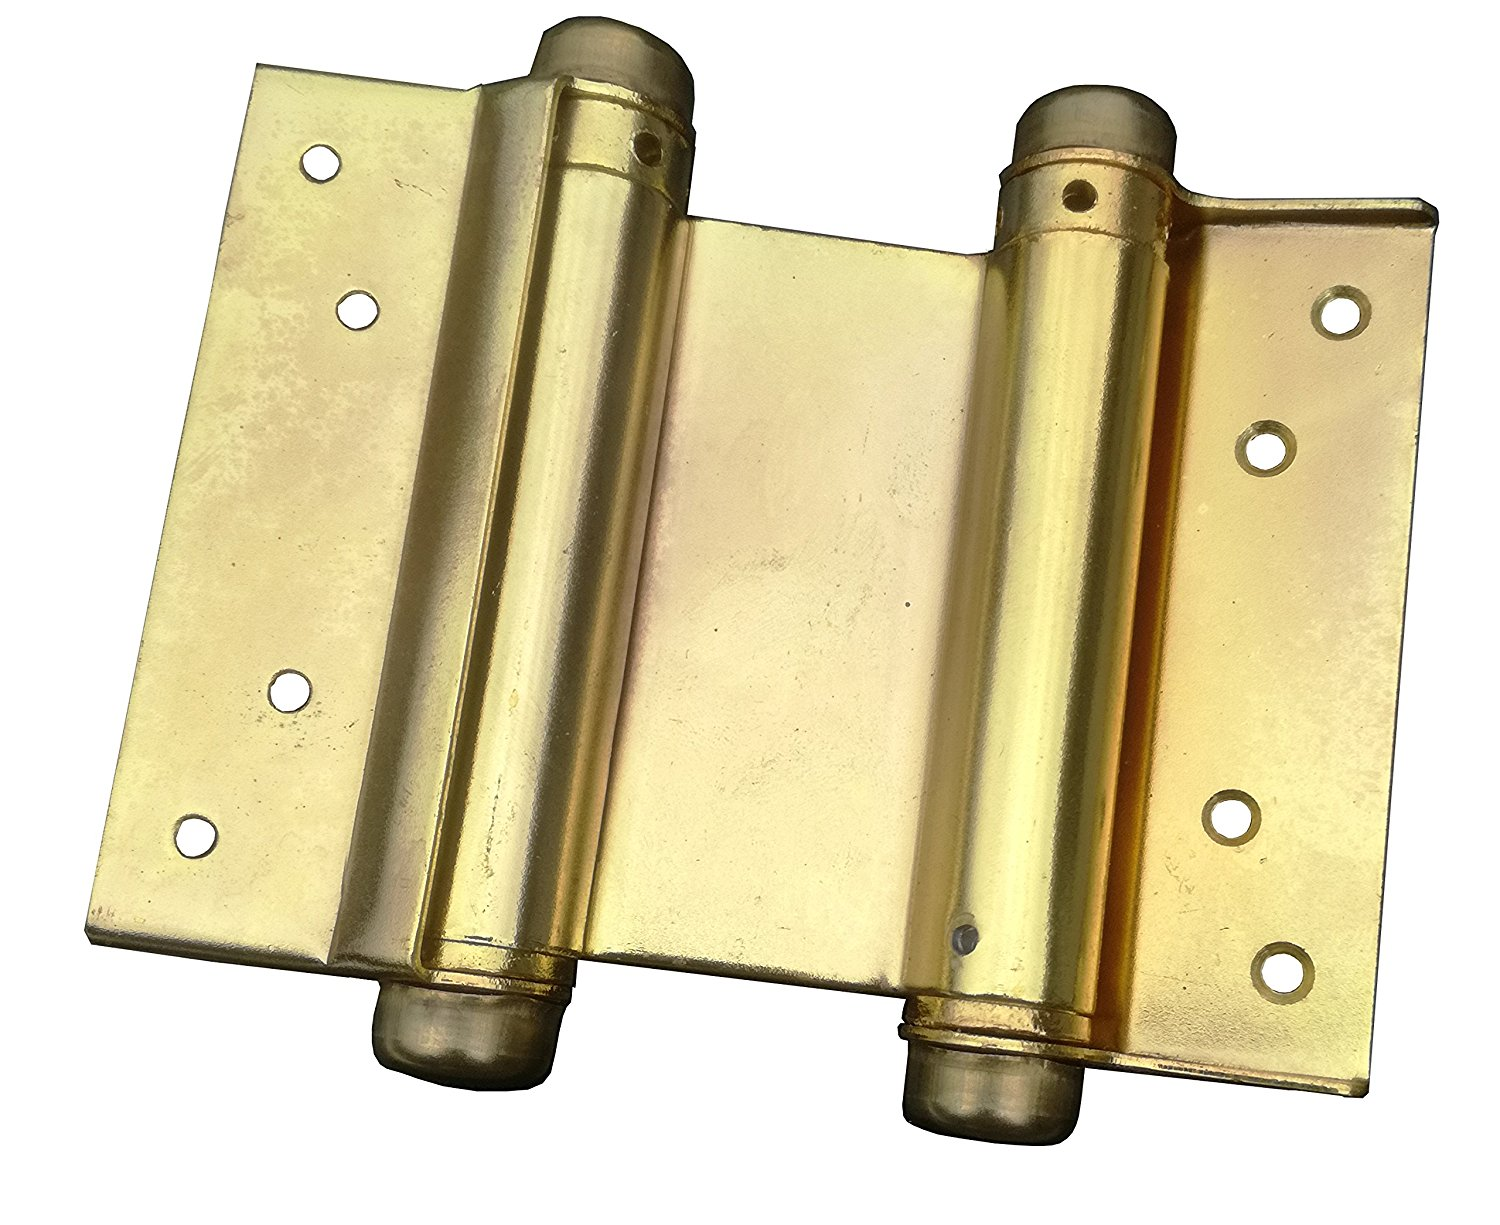 S Set Of 3 Hinges Satin Brass Parker Self Closing Slim Spring Hinges 4-1//2 X 4-1//2 For Medium And Heavyweight Metal Or Wood Doors In